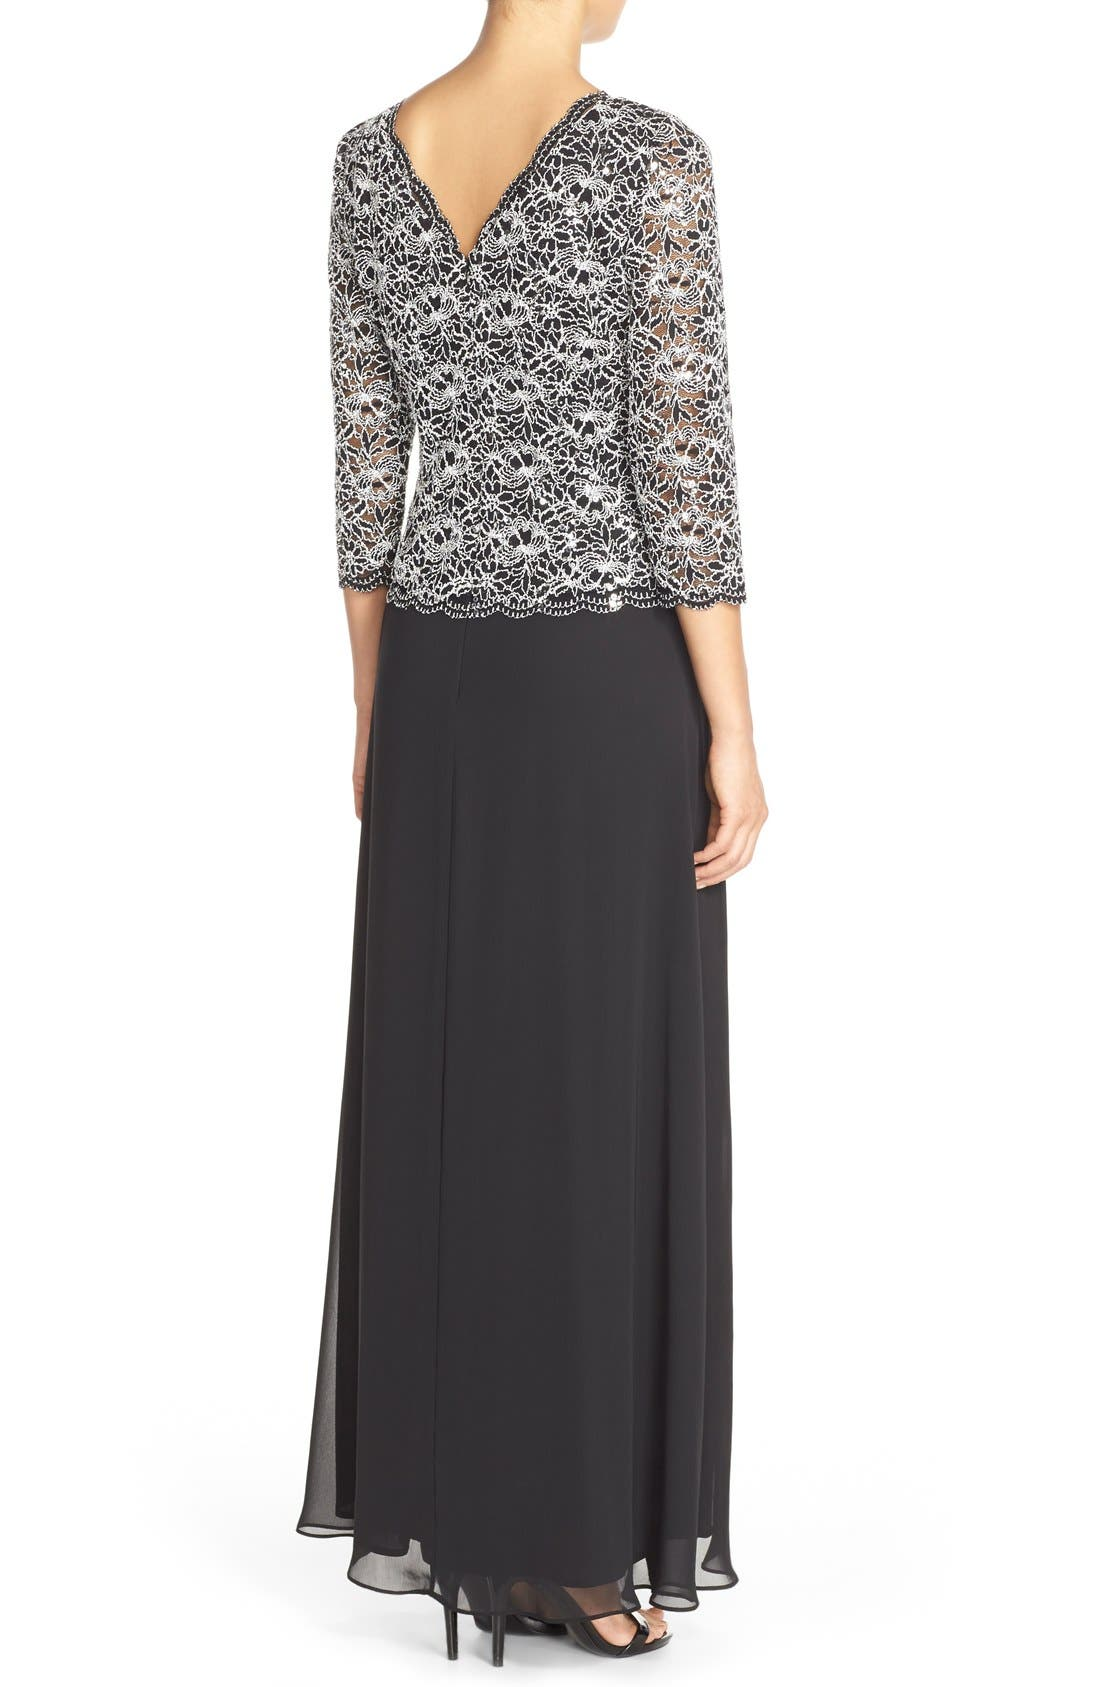 ALEX EVENINGS, Lace & Chiffon Mock Two-Piece Gown, Alternate thumbnail 2, color, BLACK/ WHITE